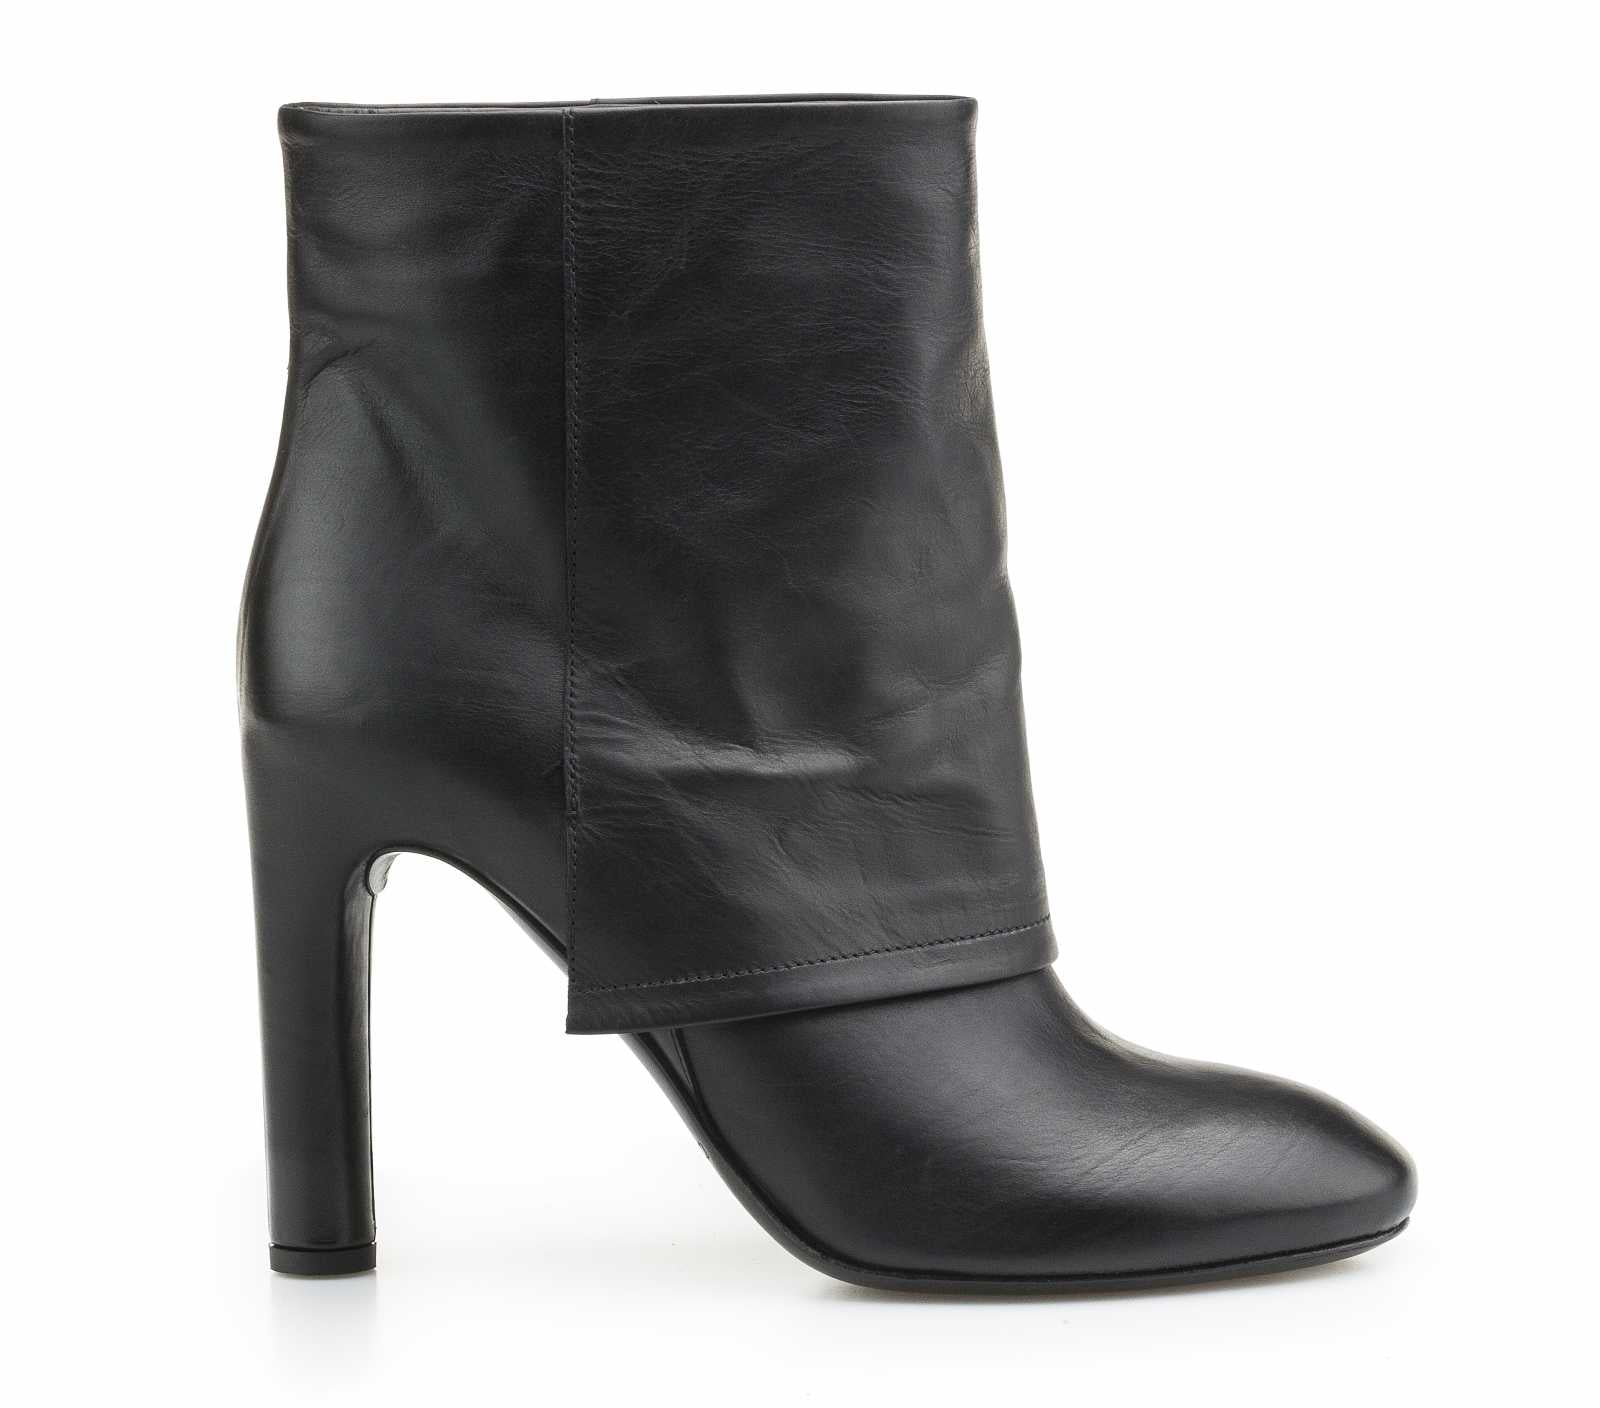 ANKLE BOOT 10850